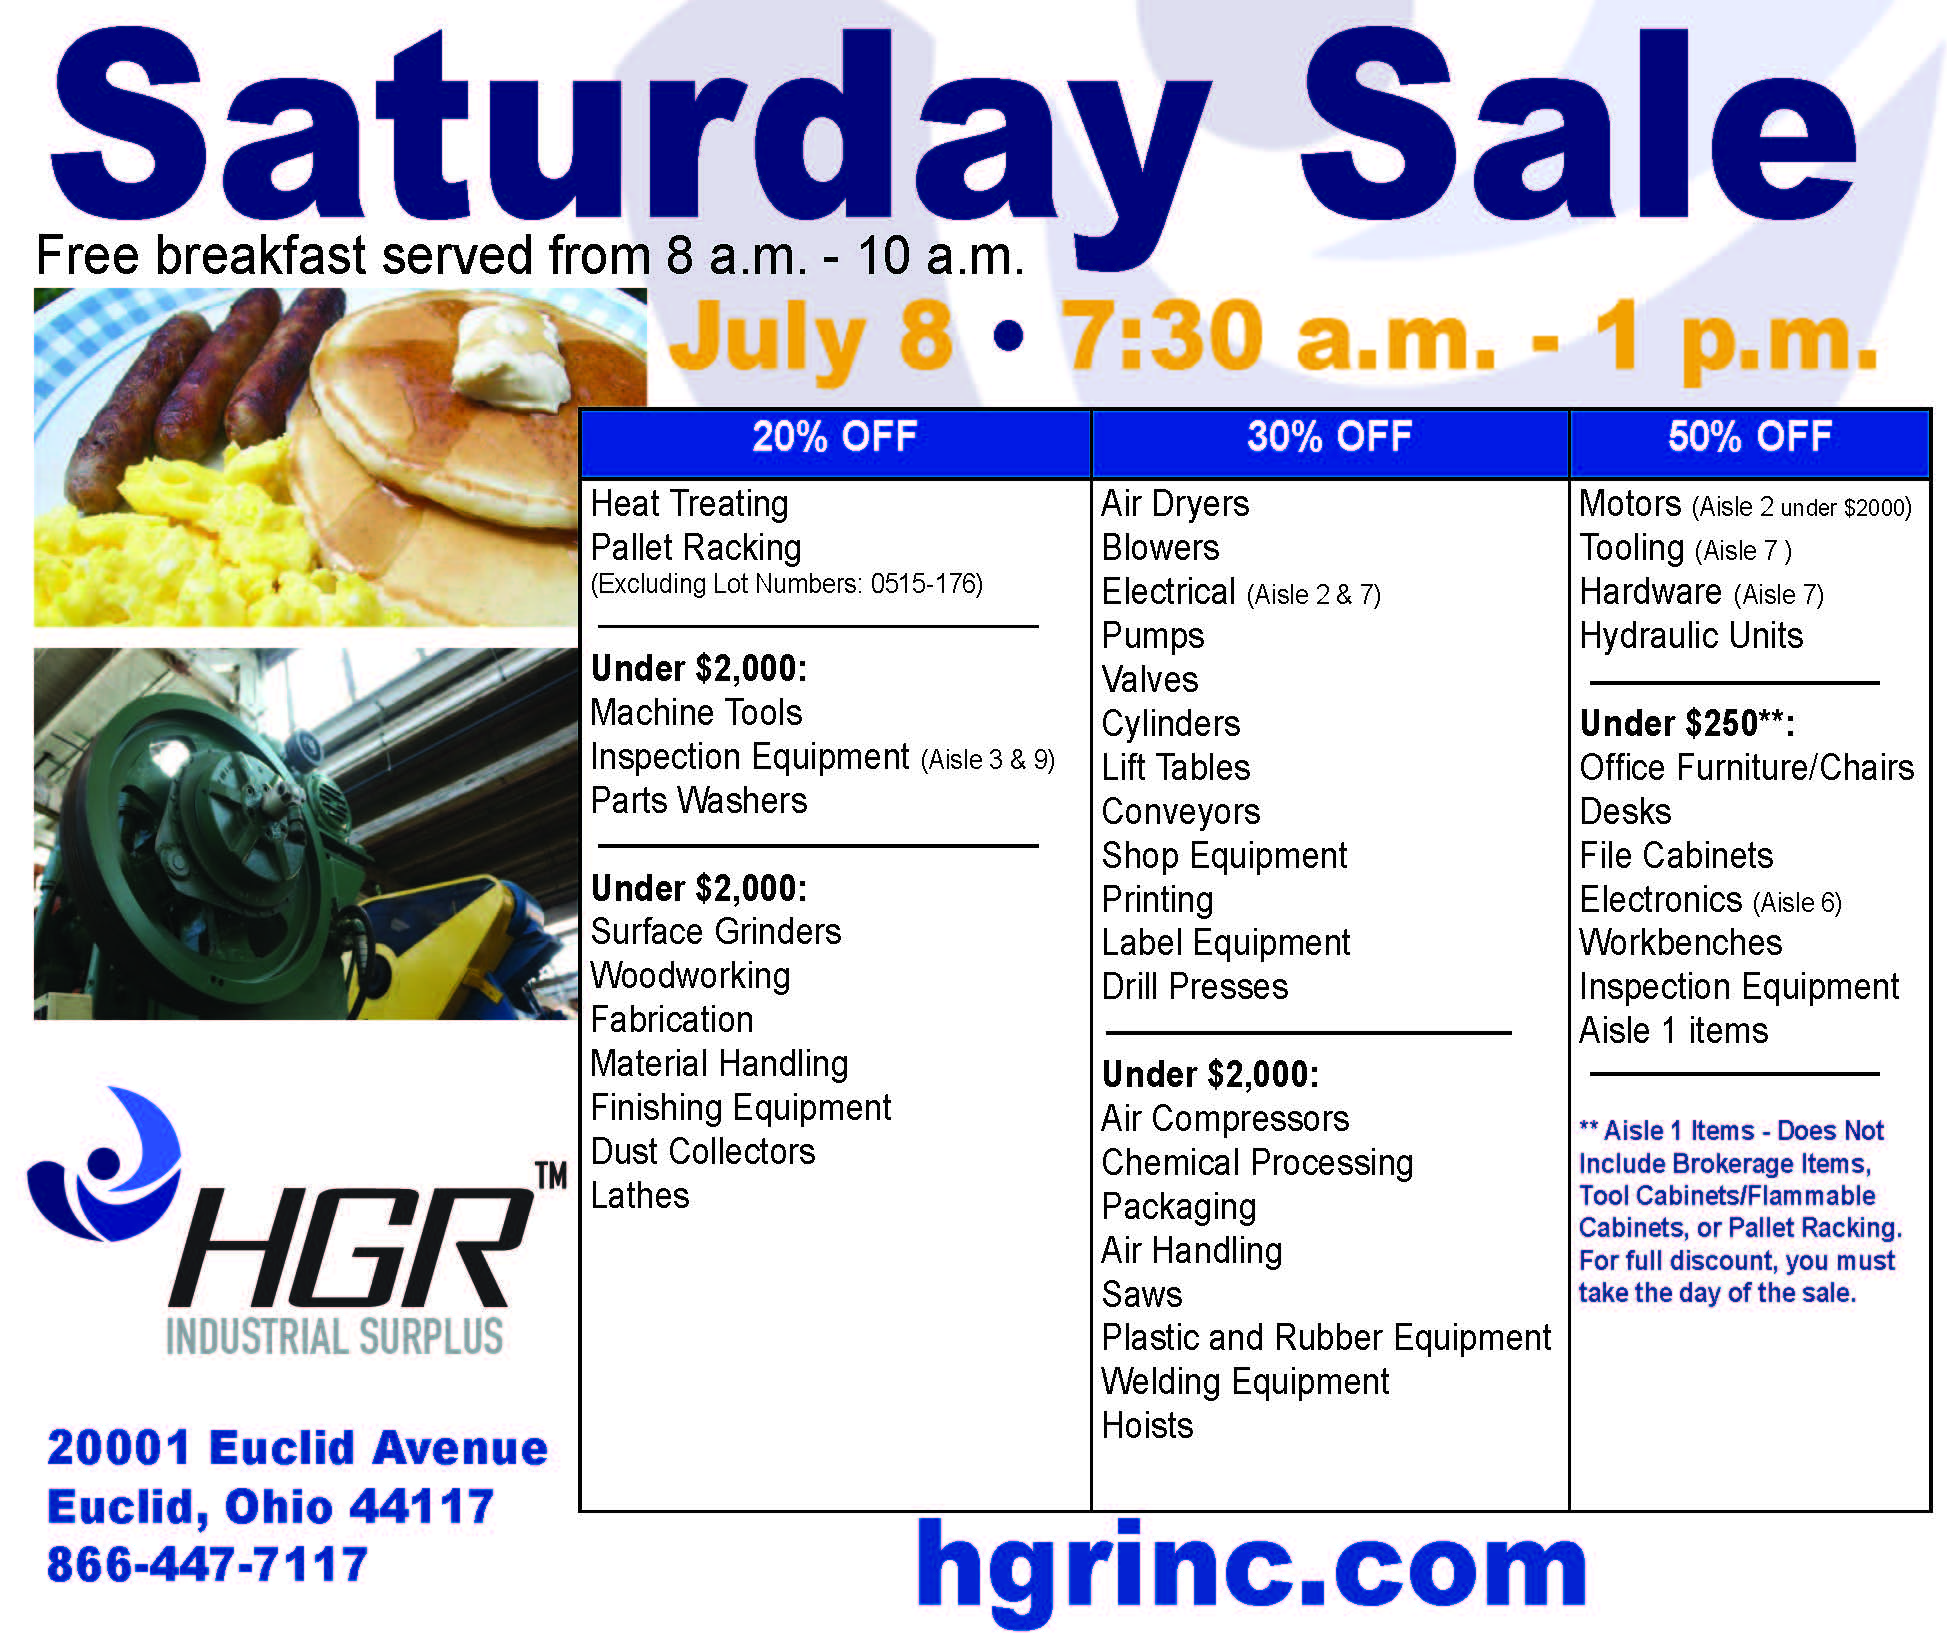 HGR July 8, 2017 Saturday sale flyer